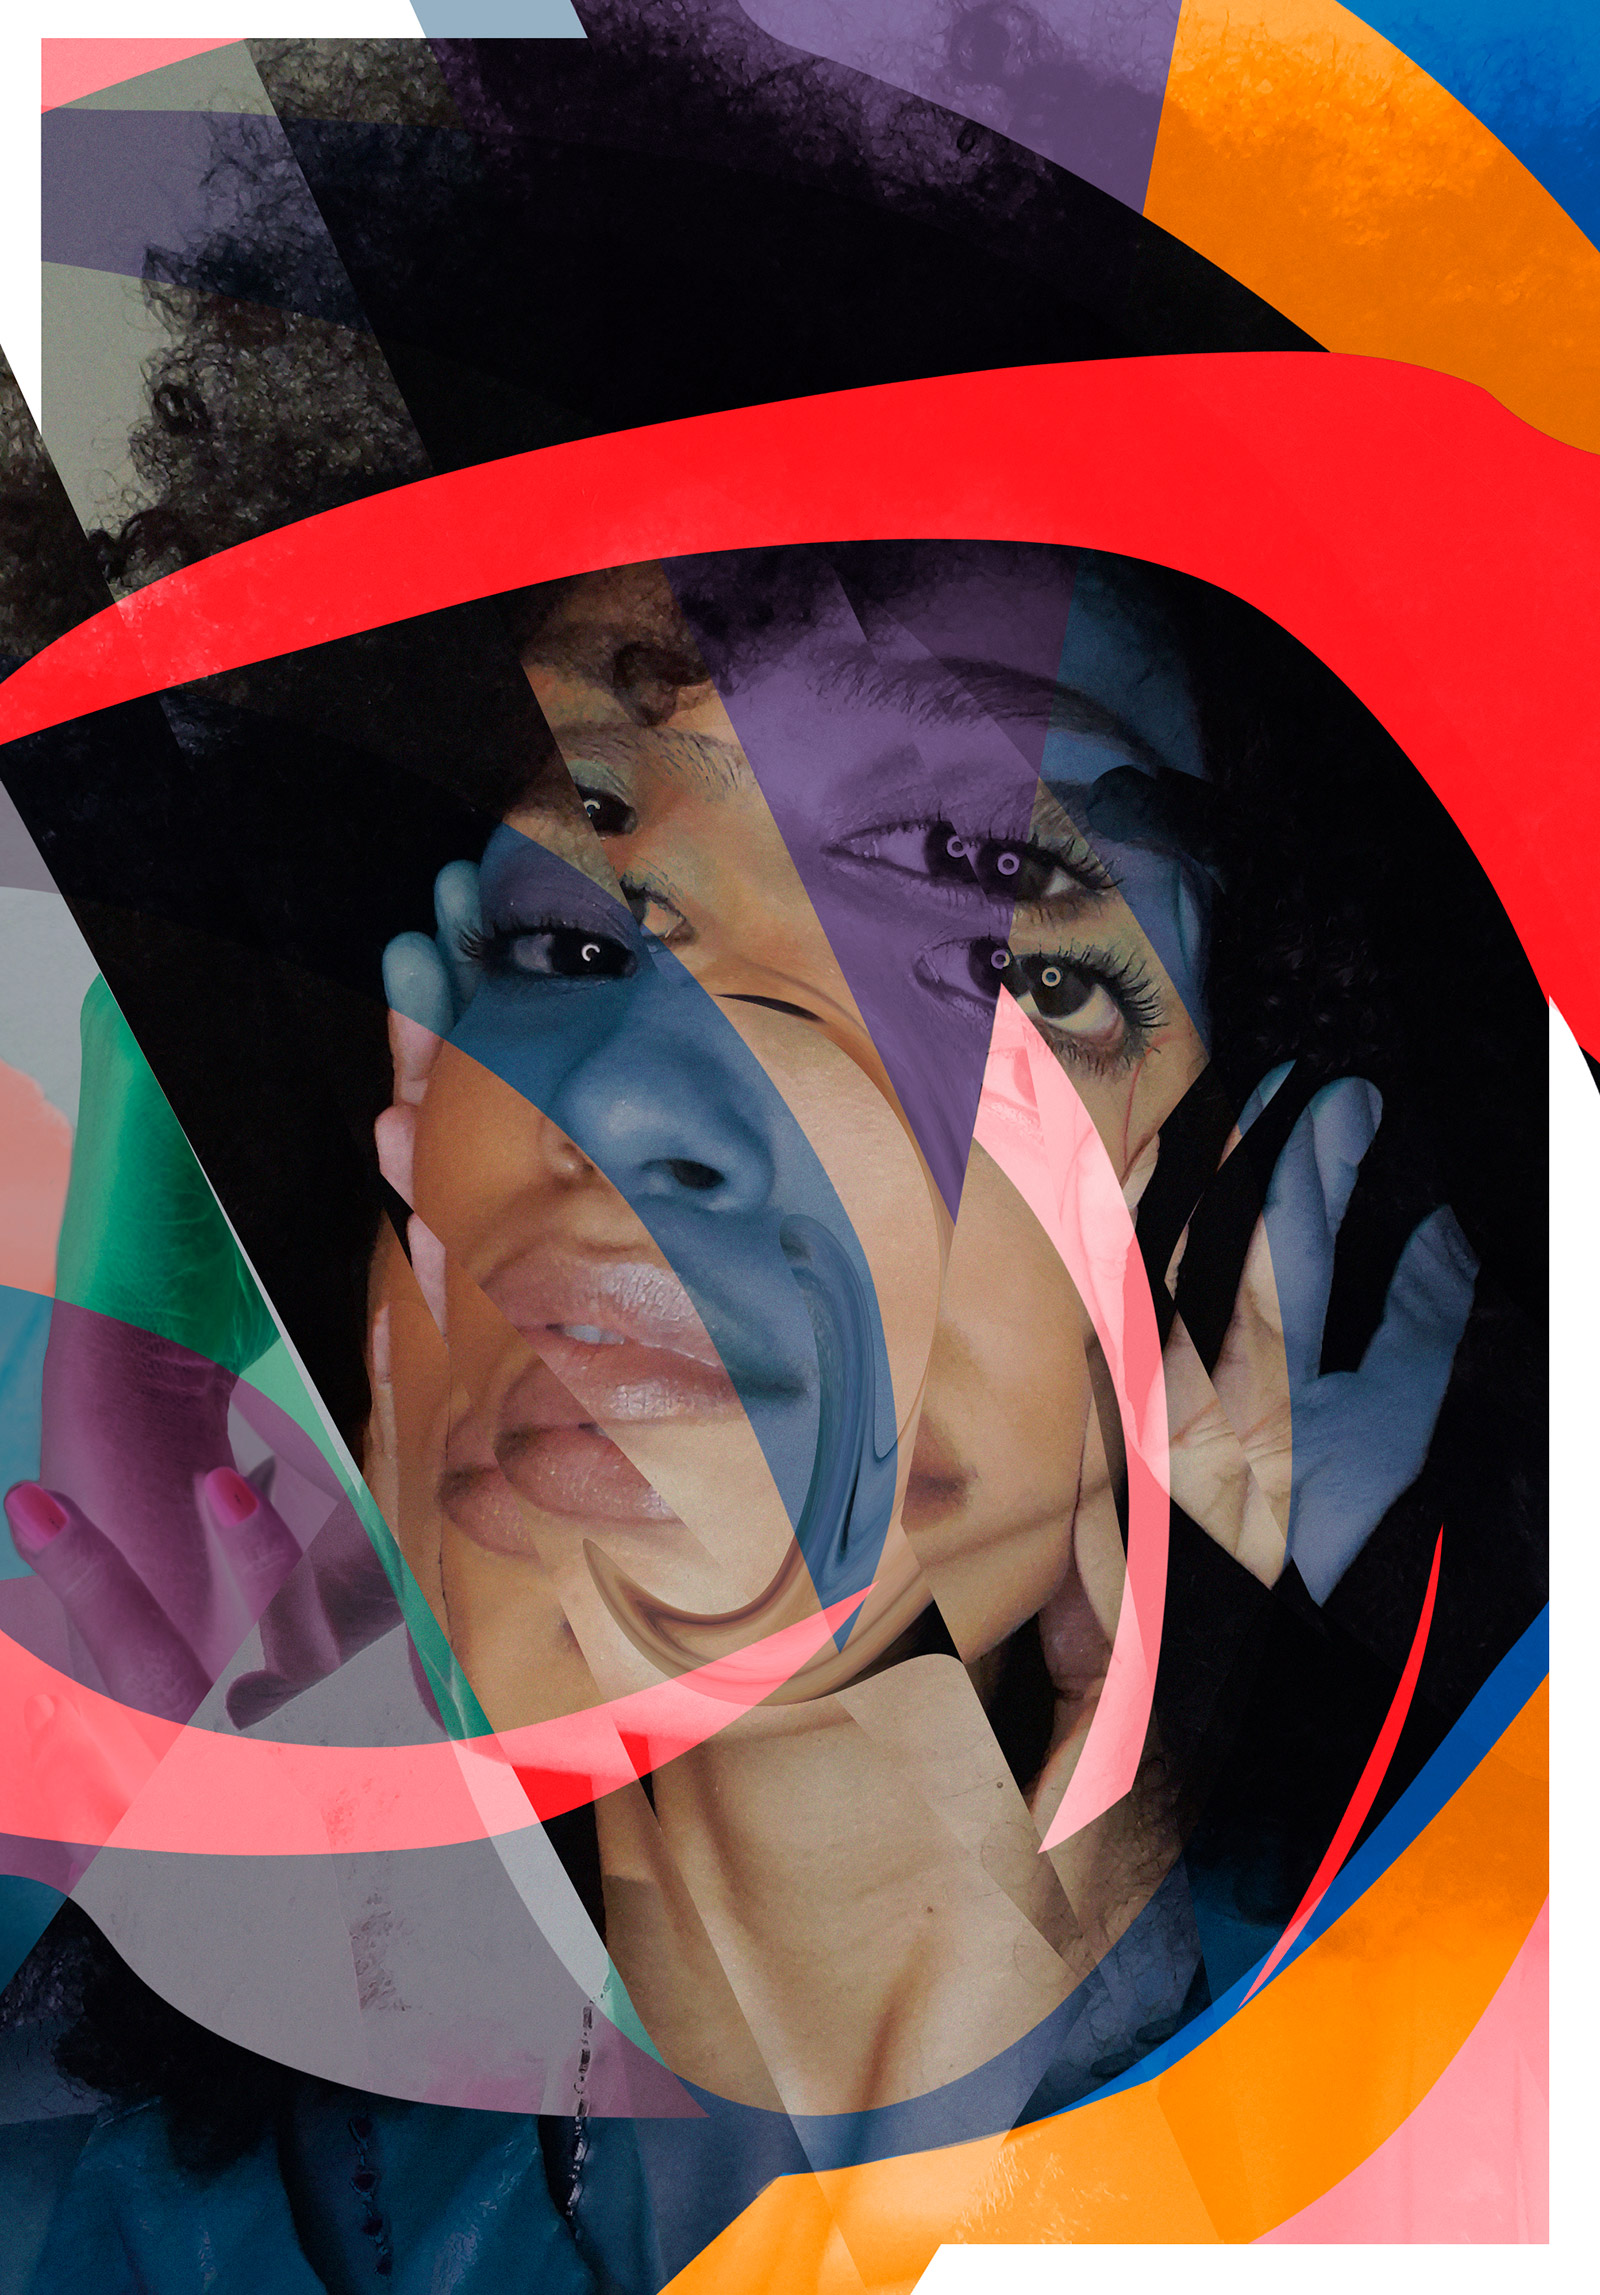 a self-portrait of artist Kellem Monteiro, an Afro Brazilian woman with a dark afro, collaged together with segmented pieces of a photo mixed with circular color-blocked shapes